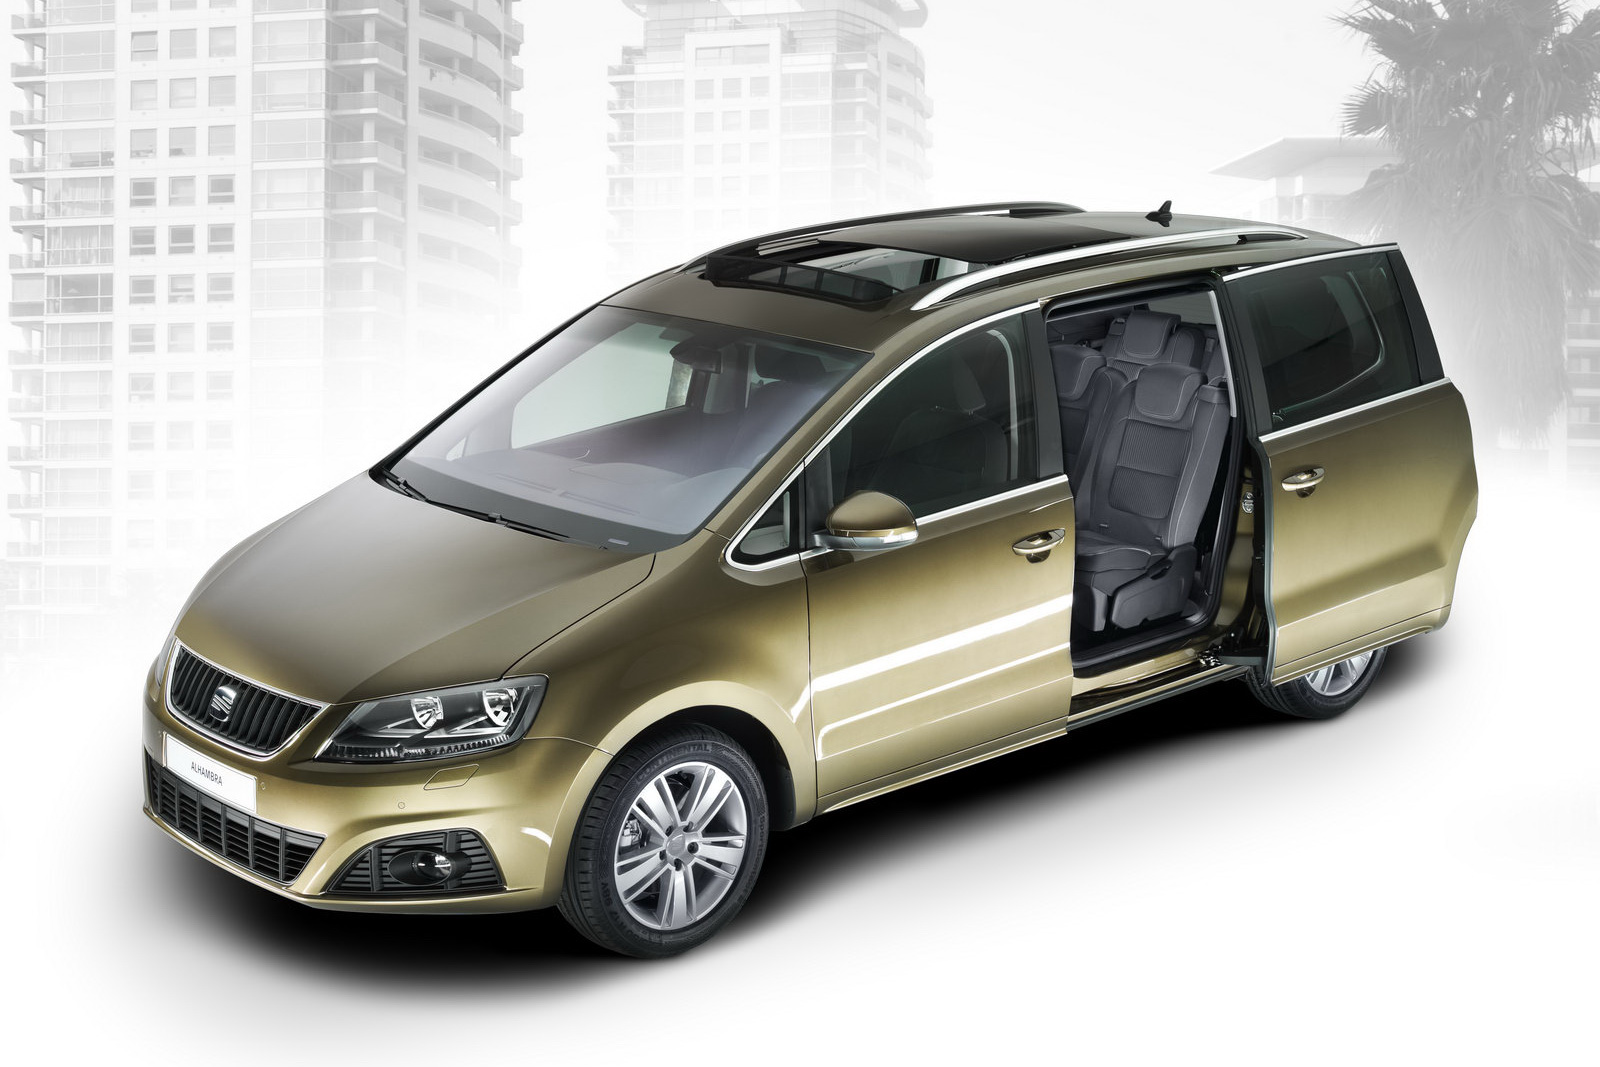 New Seat Alhambra Mpv Vw Sharan S Twin Brother Officially